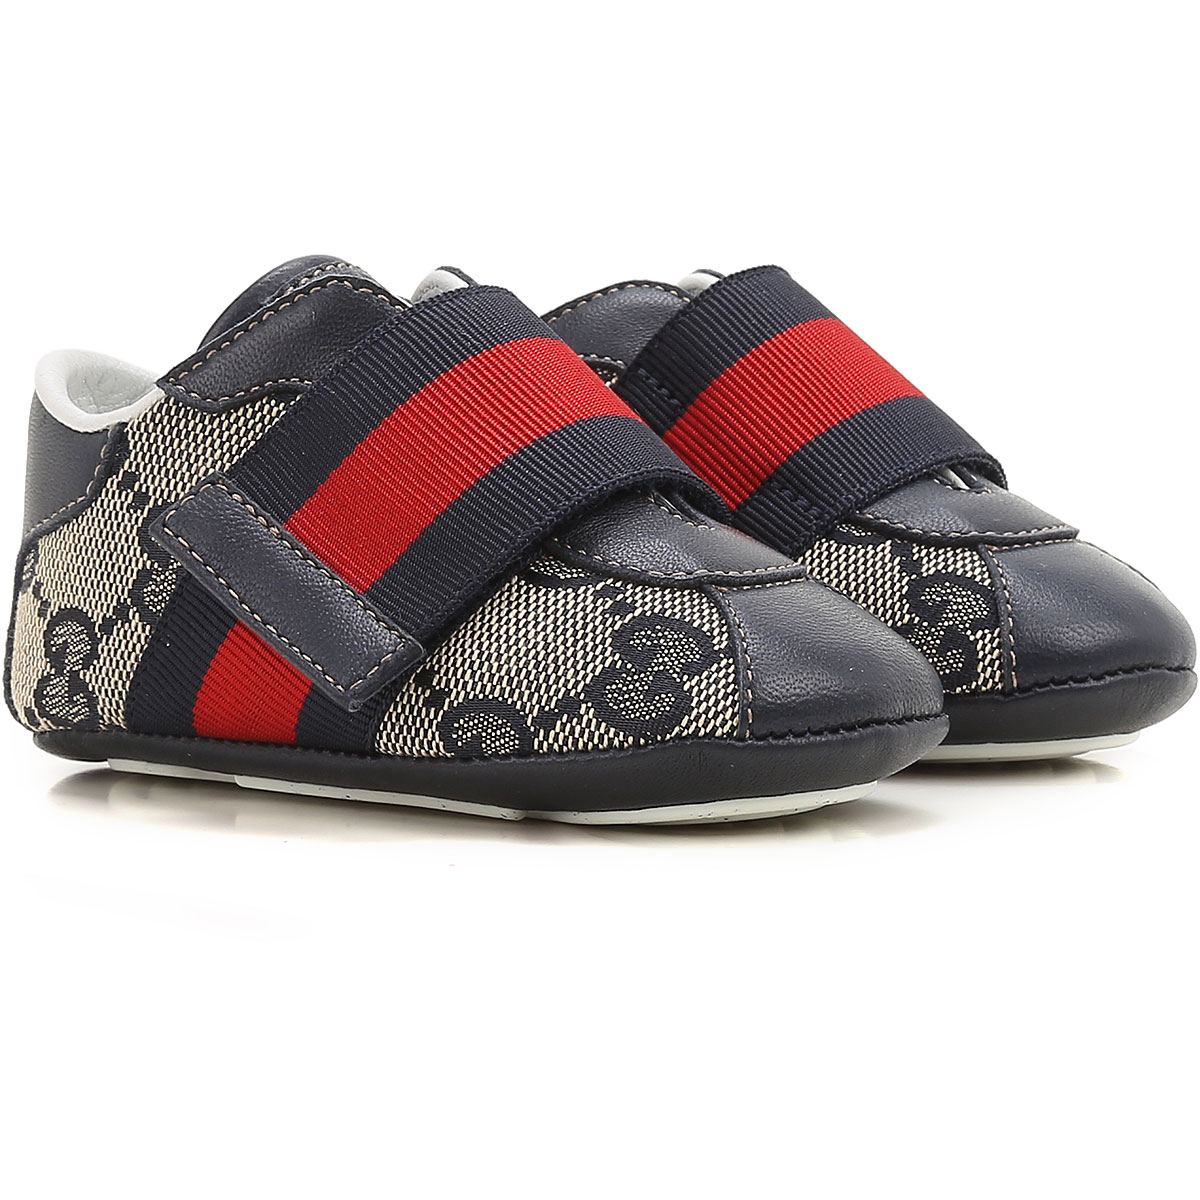 Image of Gucci Baby Shoes for Boys, Beige, Leather, 2017, ita-16 ita-17 ita-19